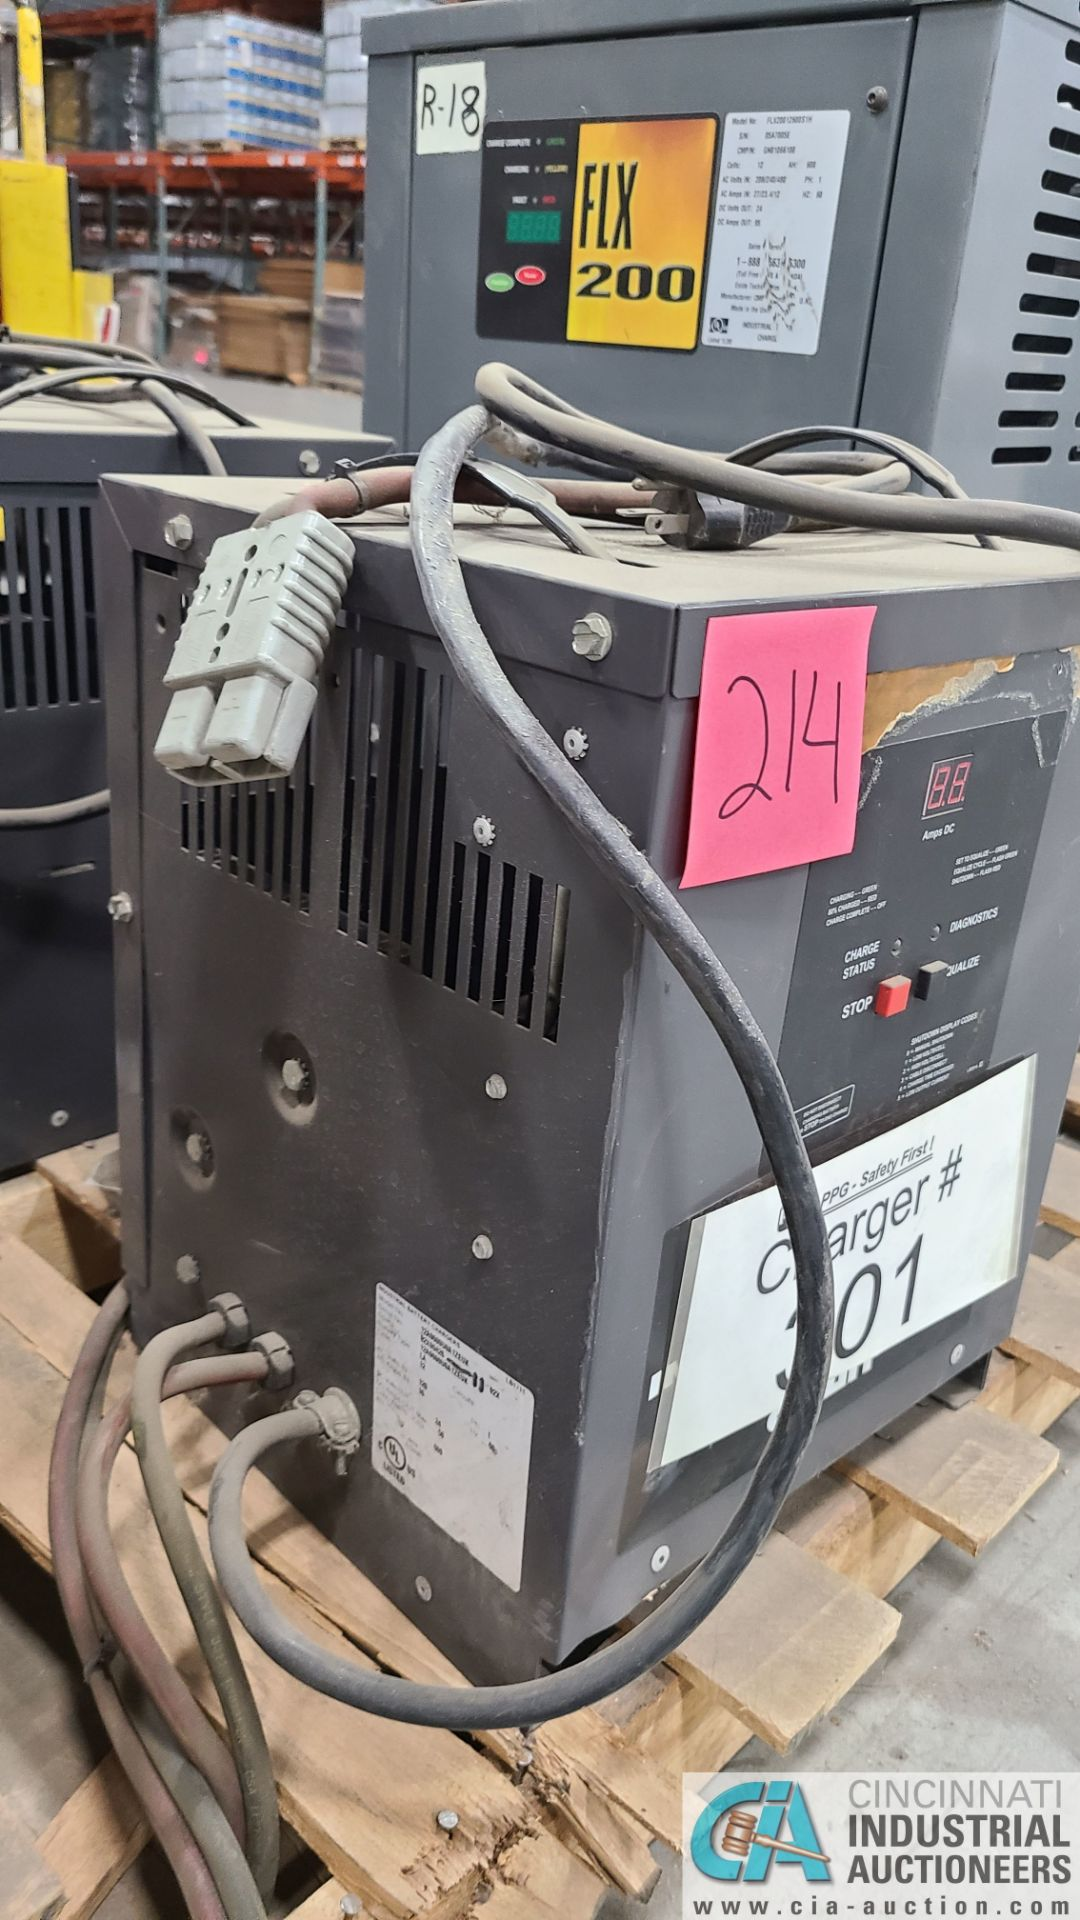 24-VOLT BATTERY BUILDERS MODEL 12A6060000A1ZEUK BATTERY CHARGER; S/N 02X9426-11 (2570 ORCHARD - Image 2 of 4